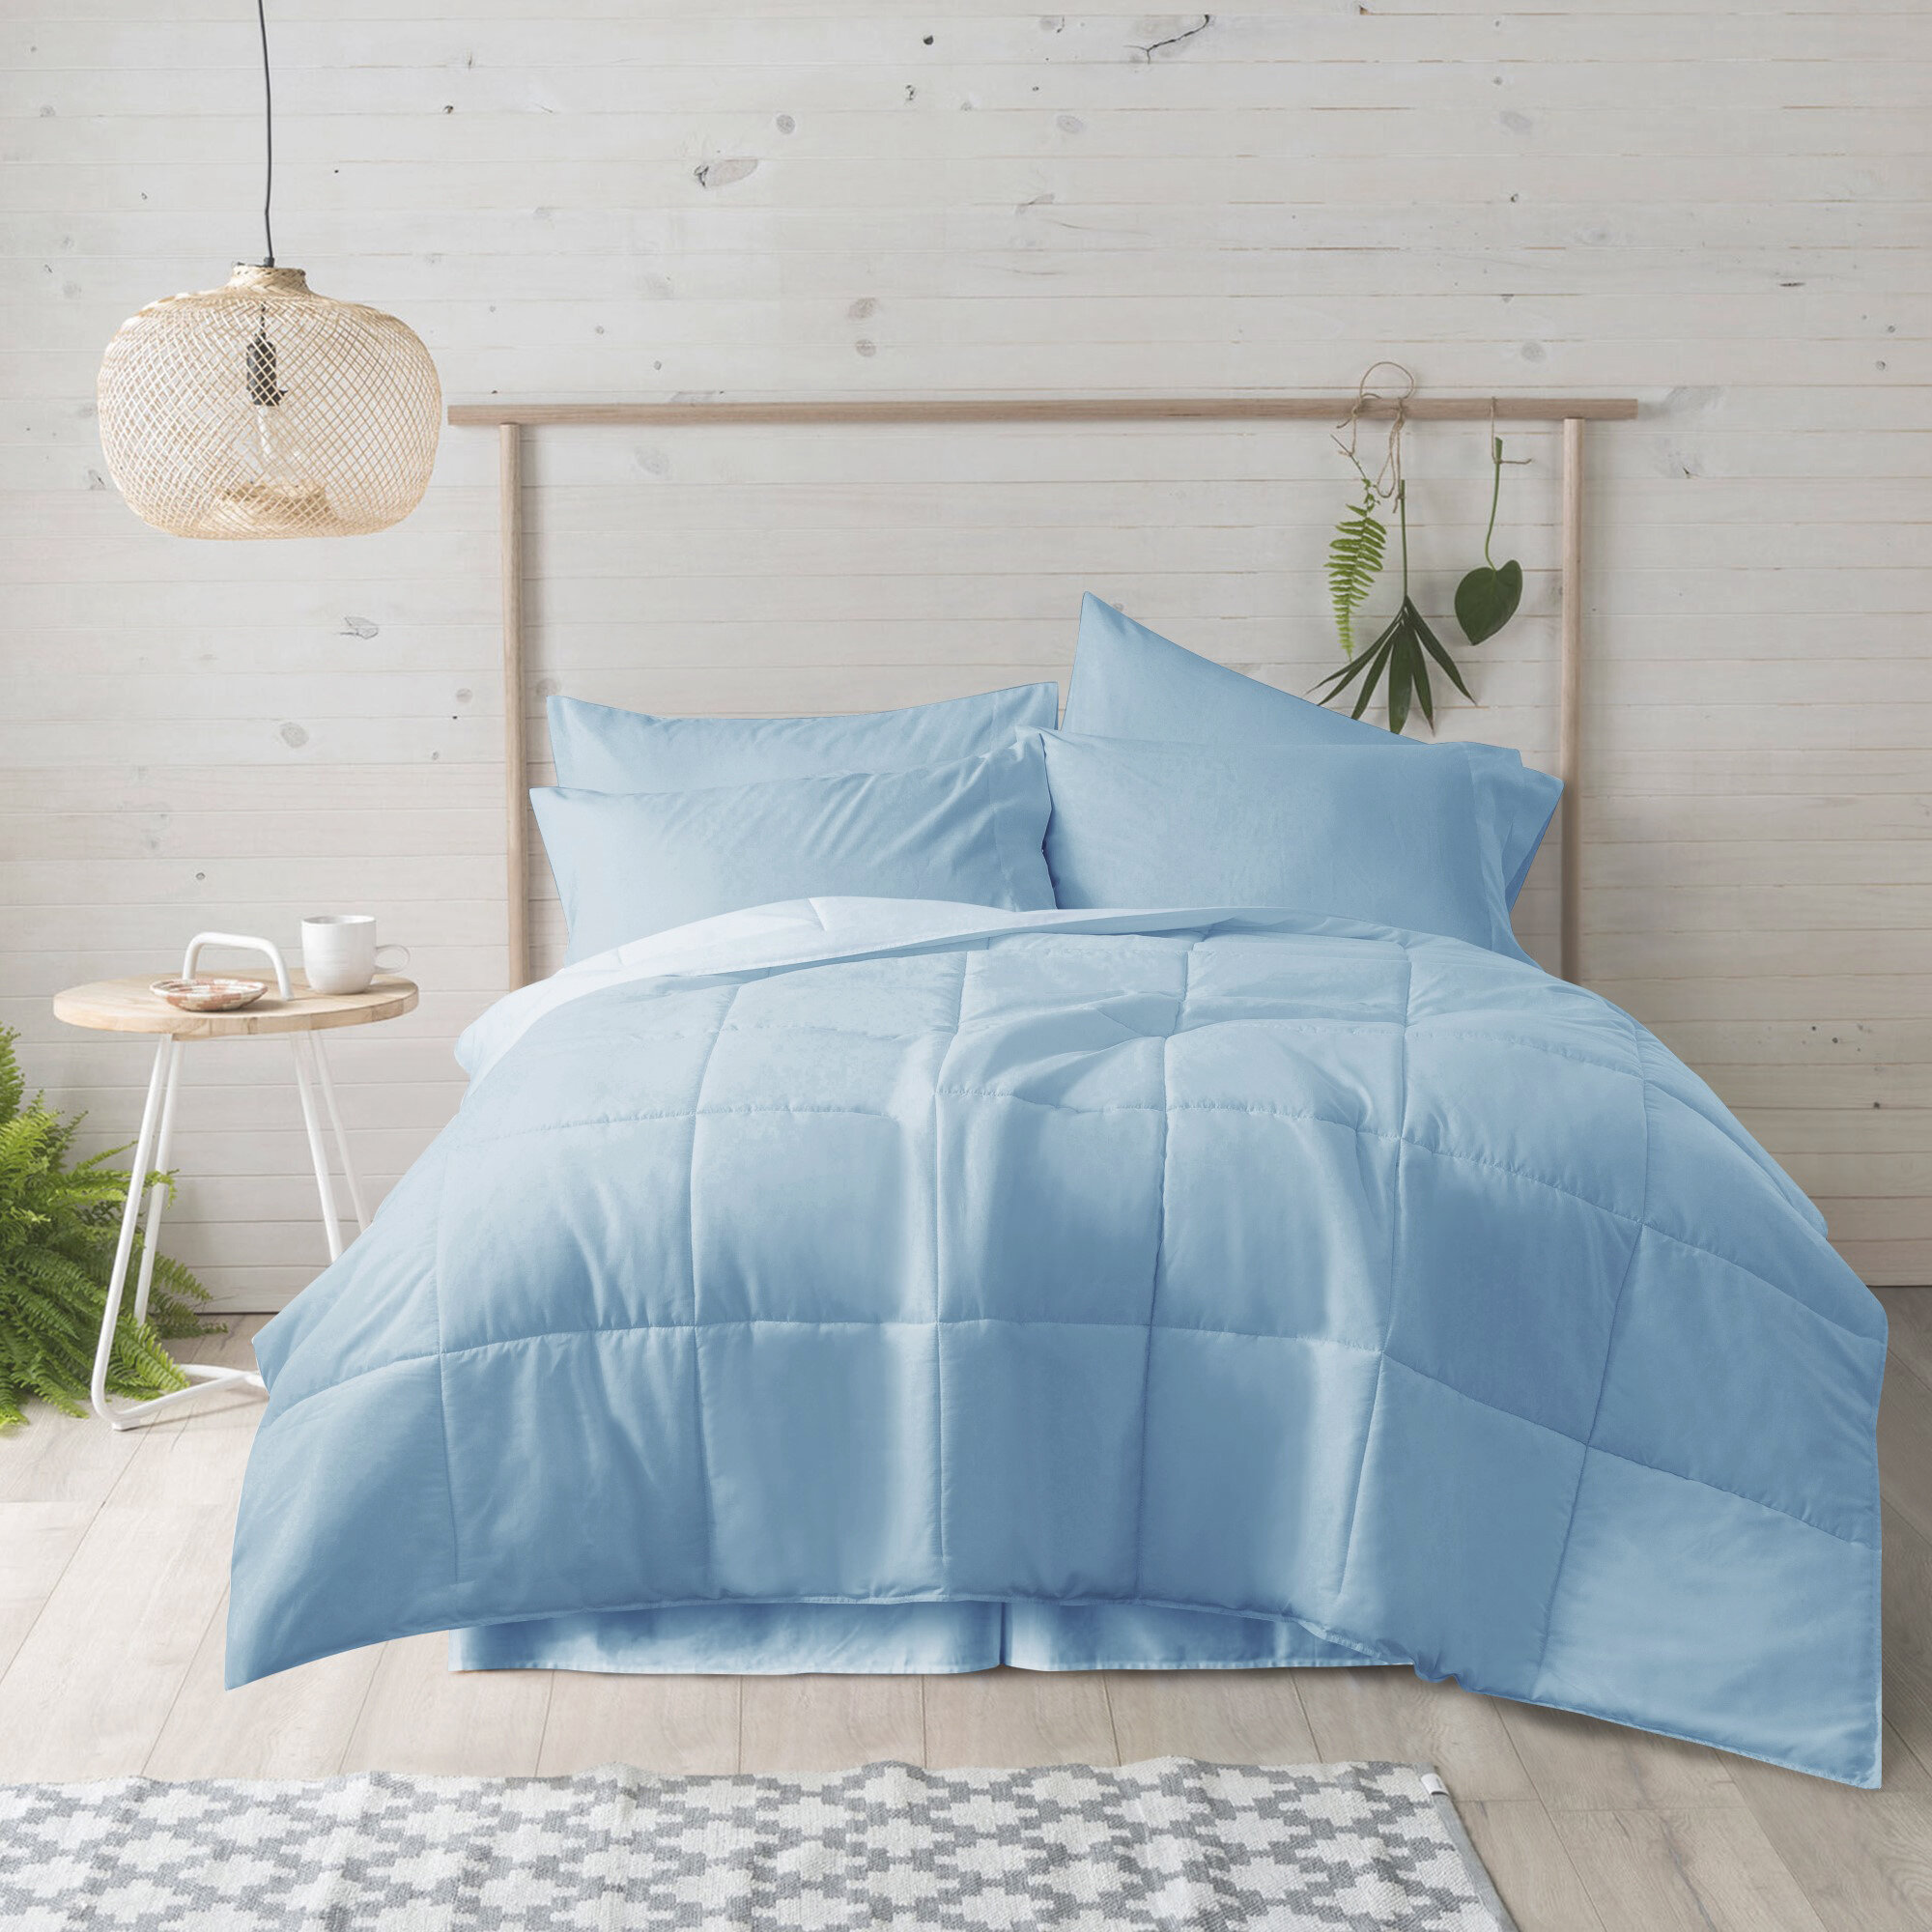 Blue Down Comforters Duvet Inserts You Ll Love In 2021 Wayfair